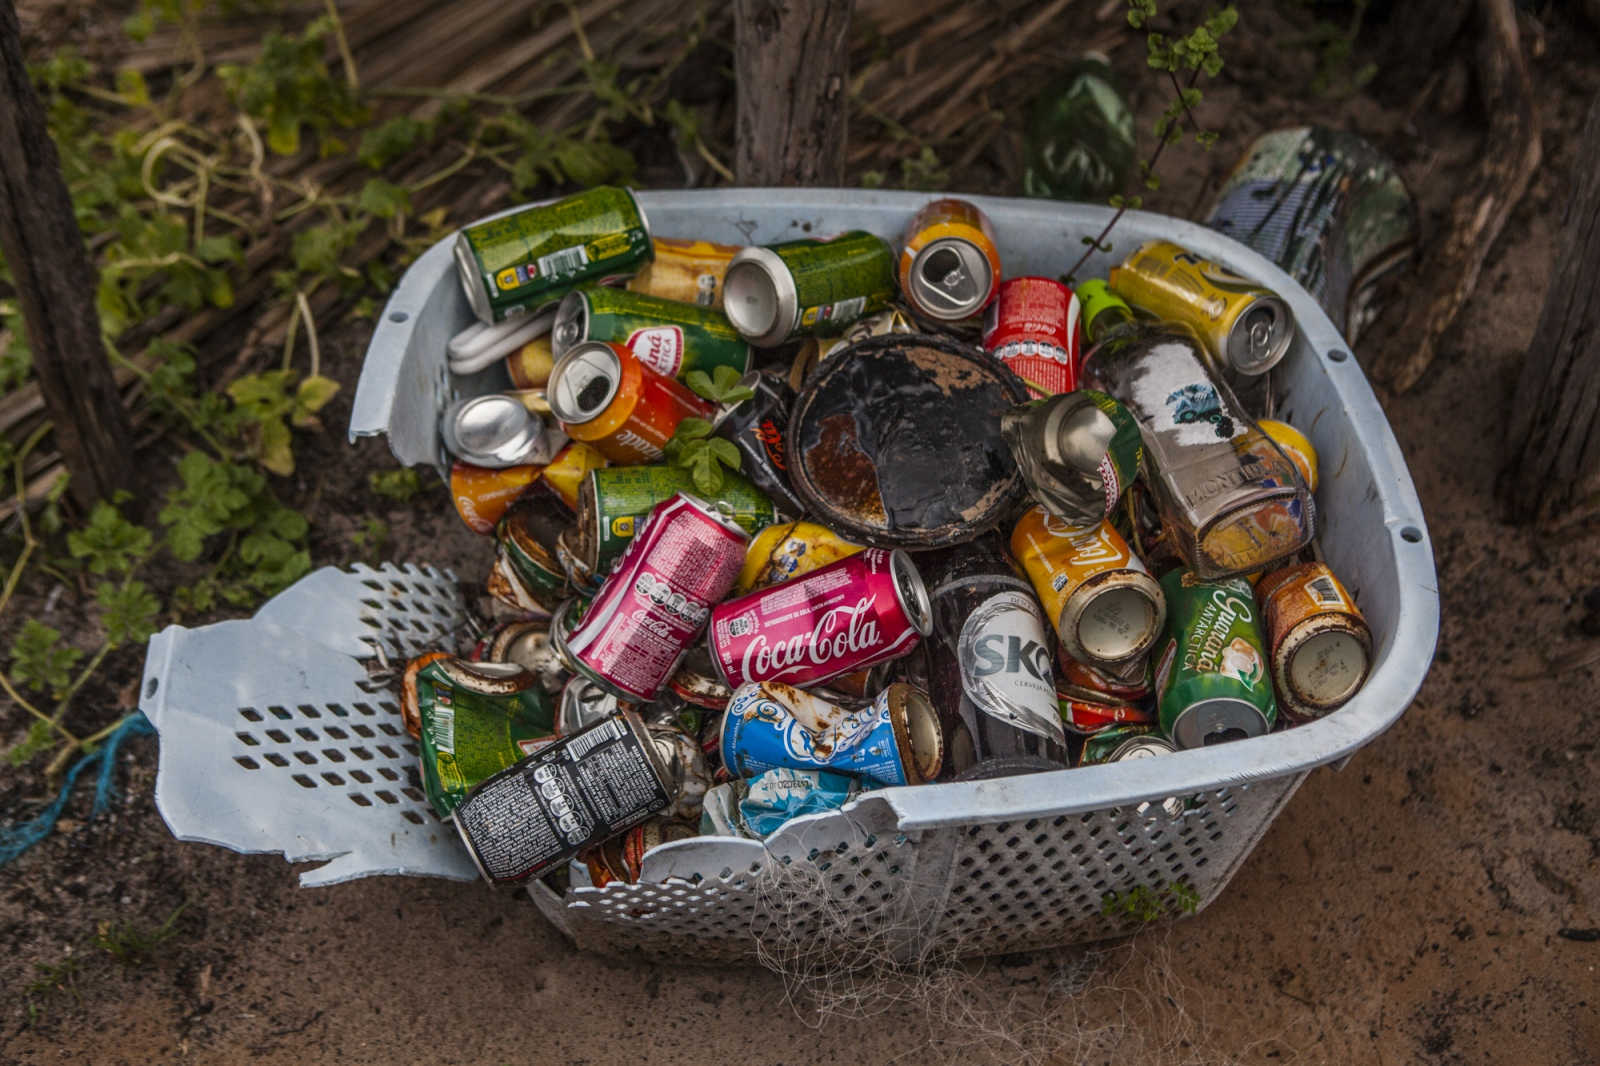 Basket of old soda cans sold to tourists that walked in to the Queimada dos Britos. Tourism is reaching the quiet life of Queimada dos Britos which is well received when the visitors walk in. Locals keep a stock of drinks that they sell to tourists as a way to make some money that allows them to buy some necessary products like clothes, coffee and rice. The downturn is that more and more agencies from nearby cities are bringing tourists into the park on motor vehicles that on the locals view are affecting environmentally the park and their peaceful life.